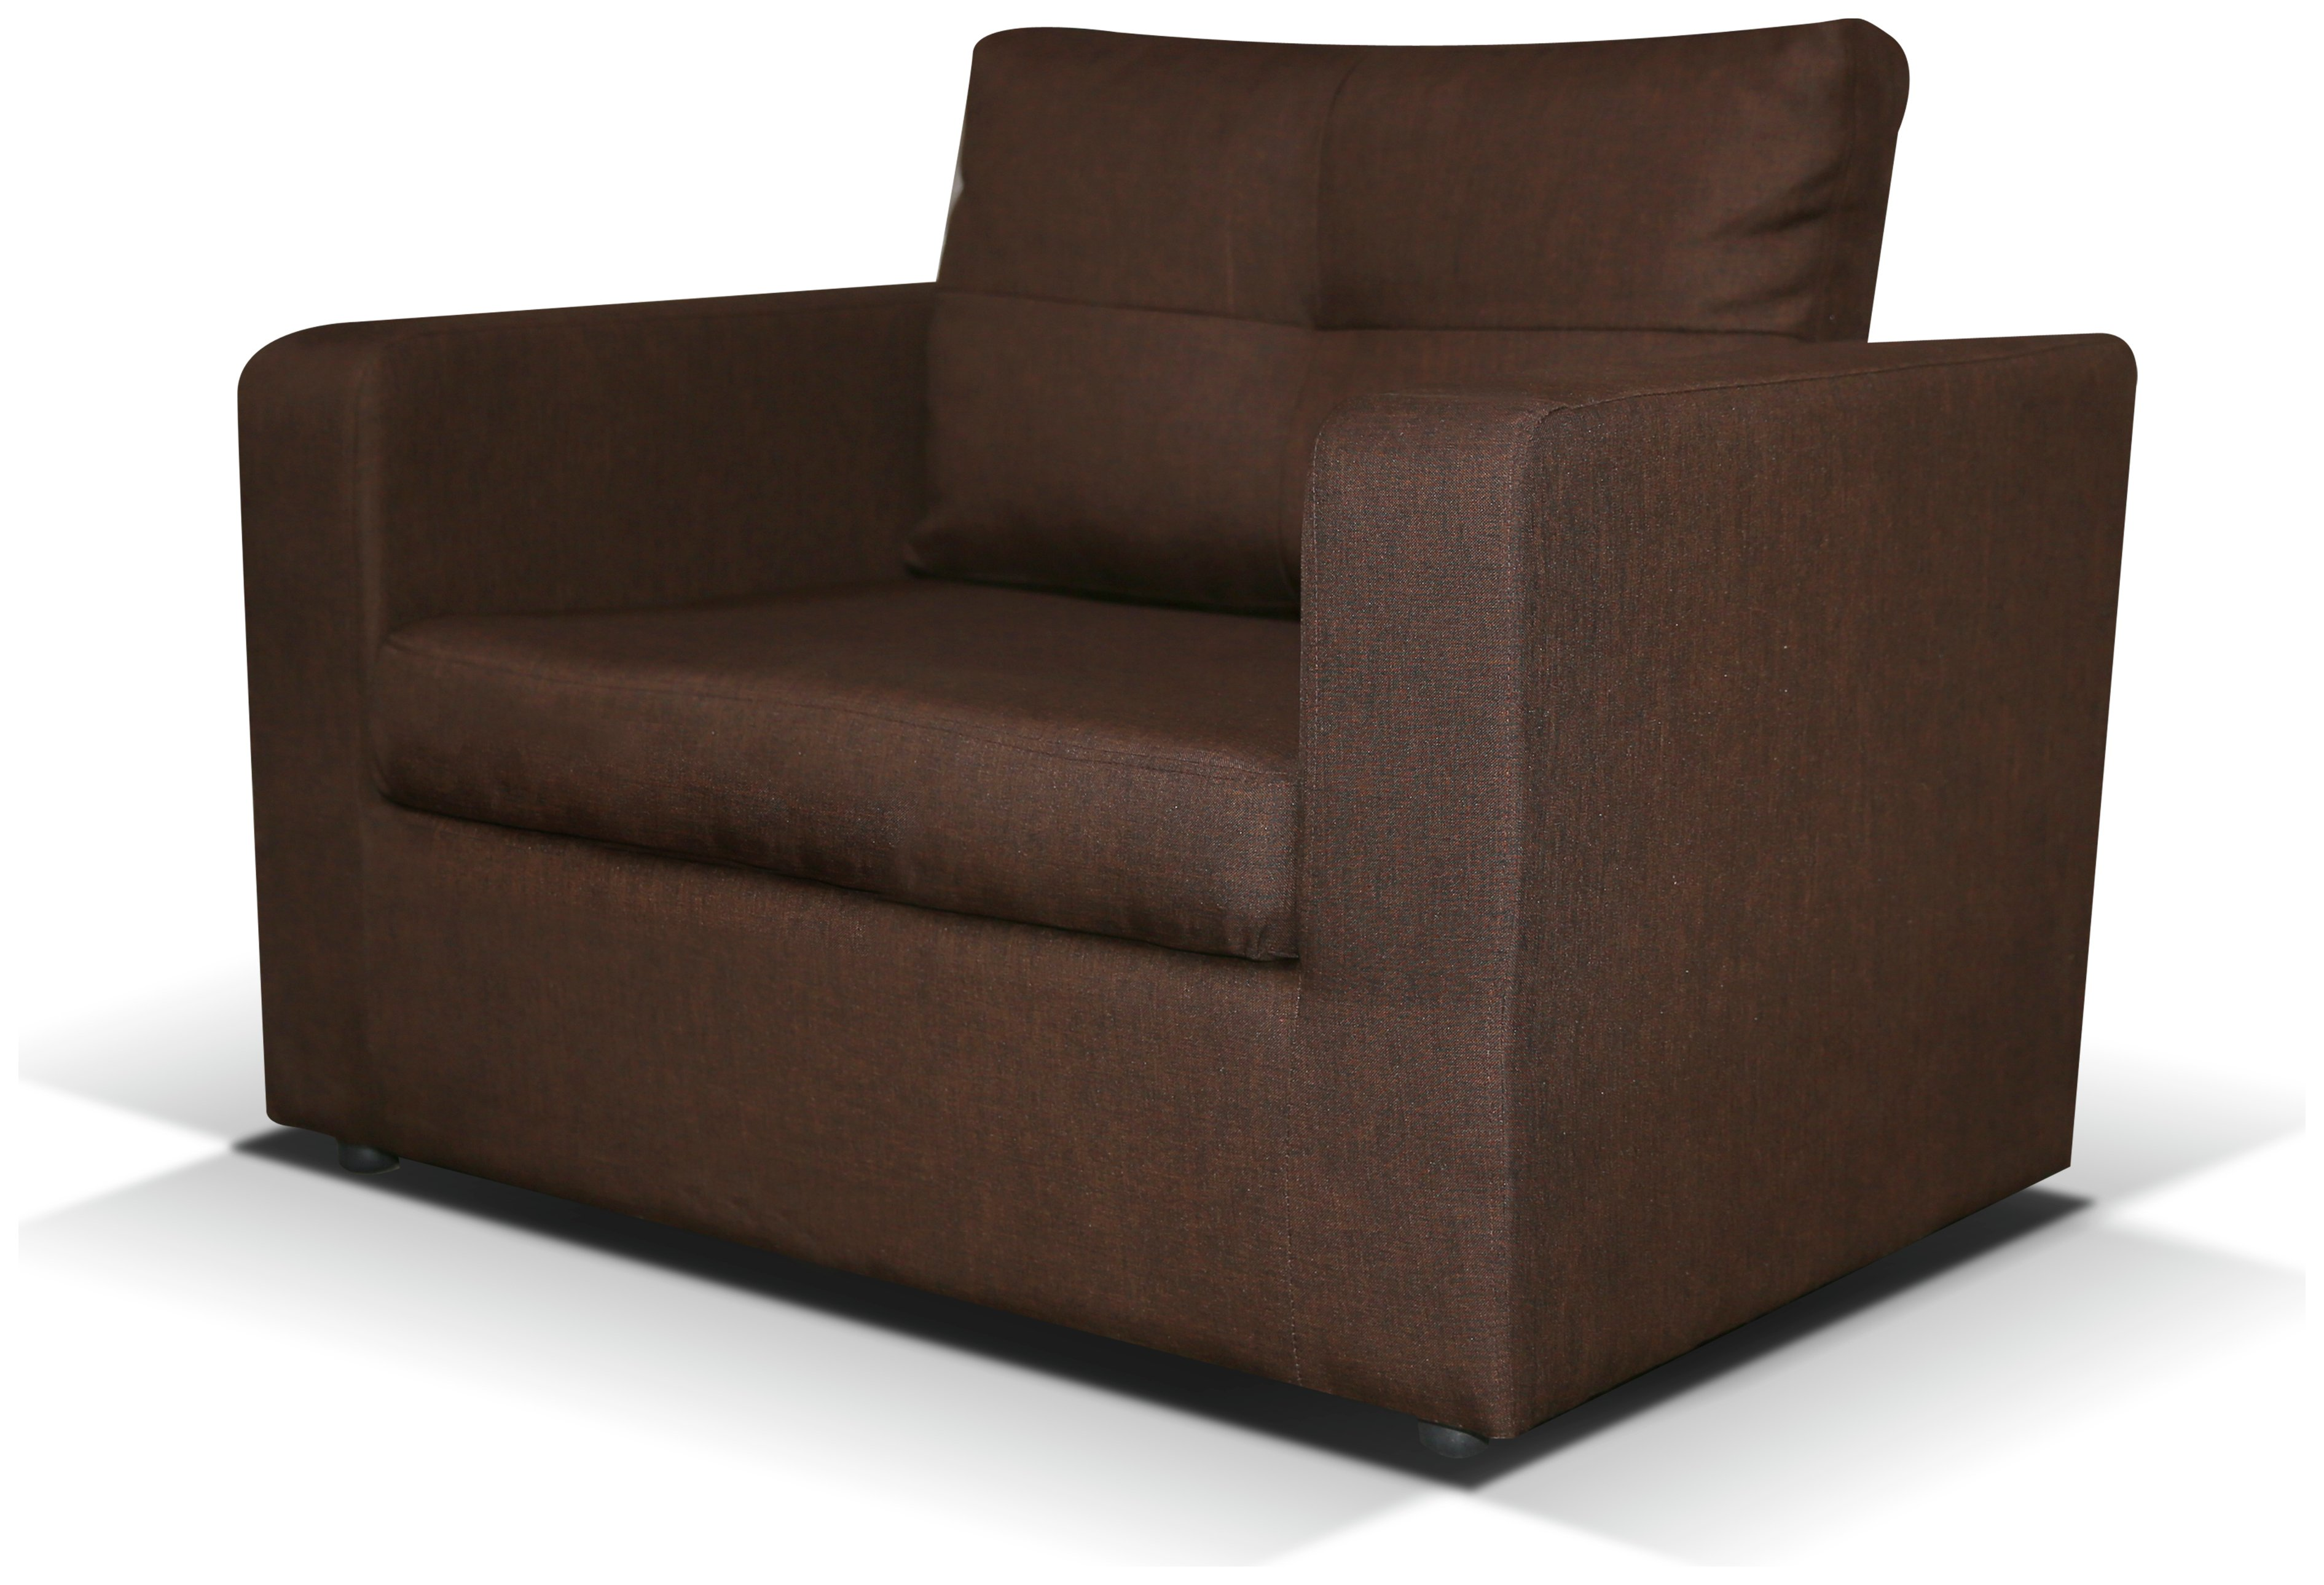 Max - Fabric Chair Bed - Chocolate lowest price